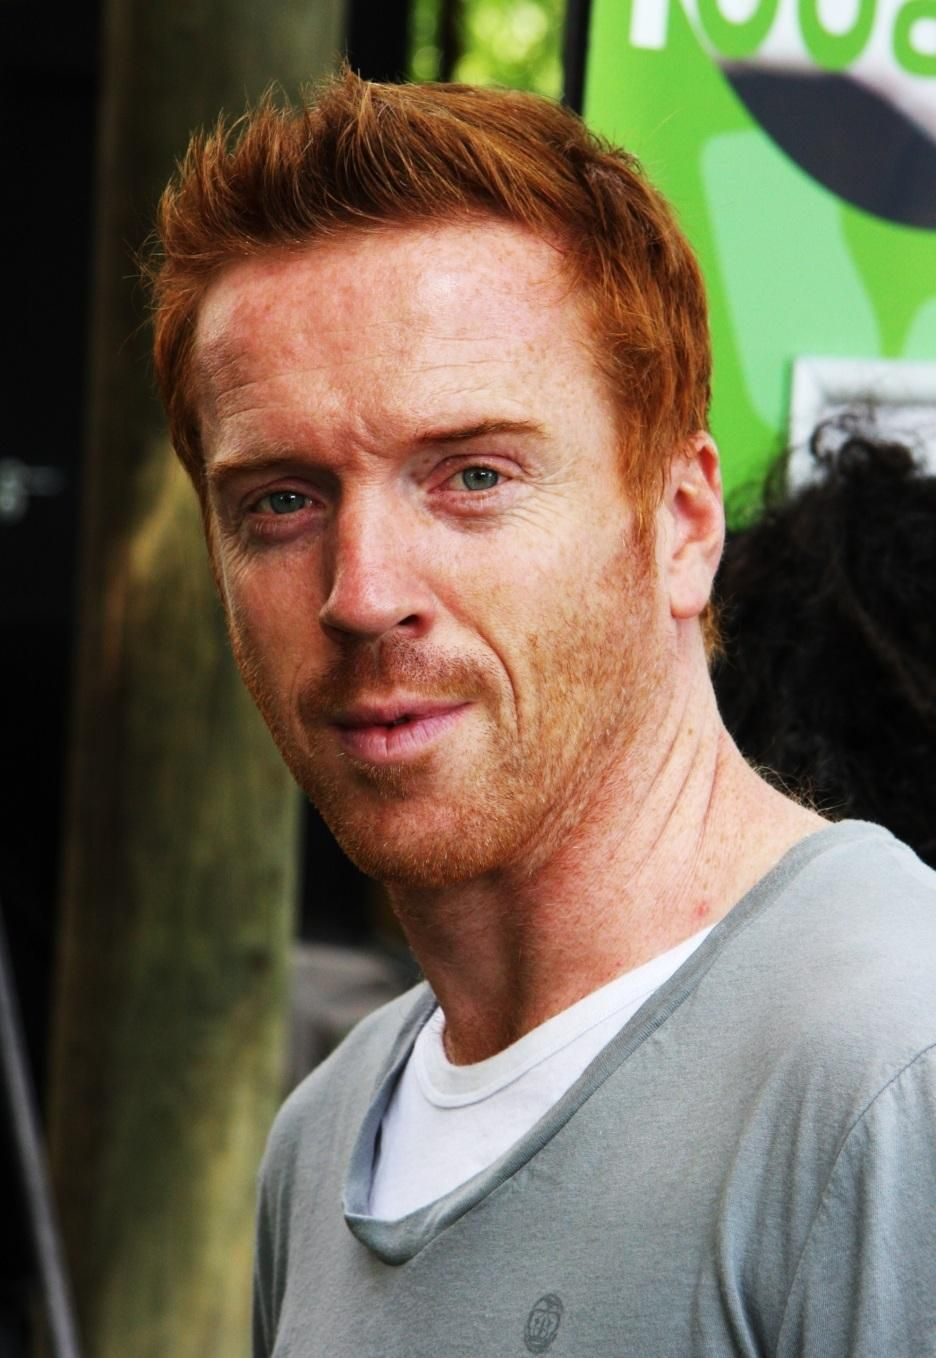 Discussion on this topic: Helen Baxendale (born 1970), damian-lewis-born-1971/